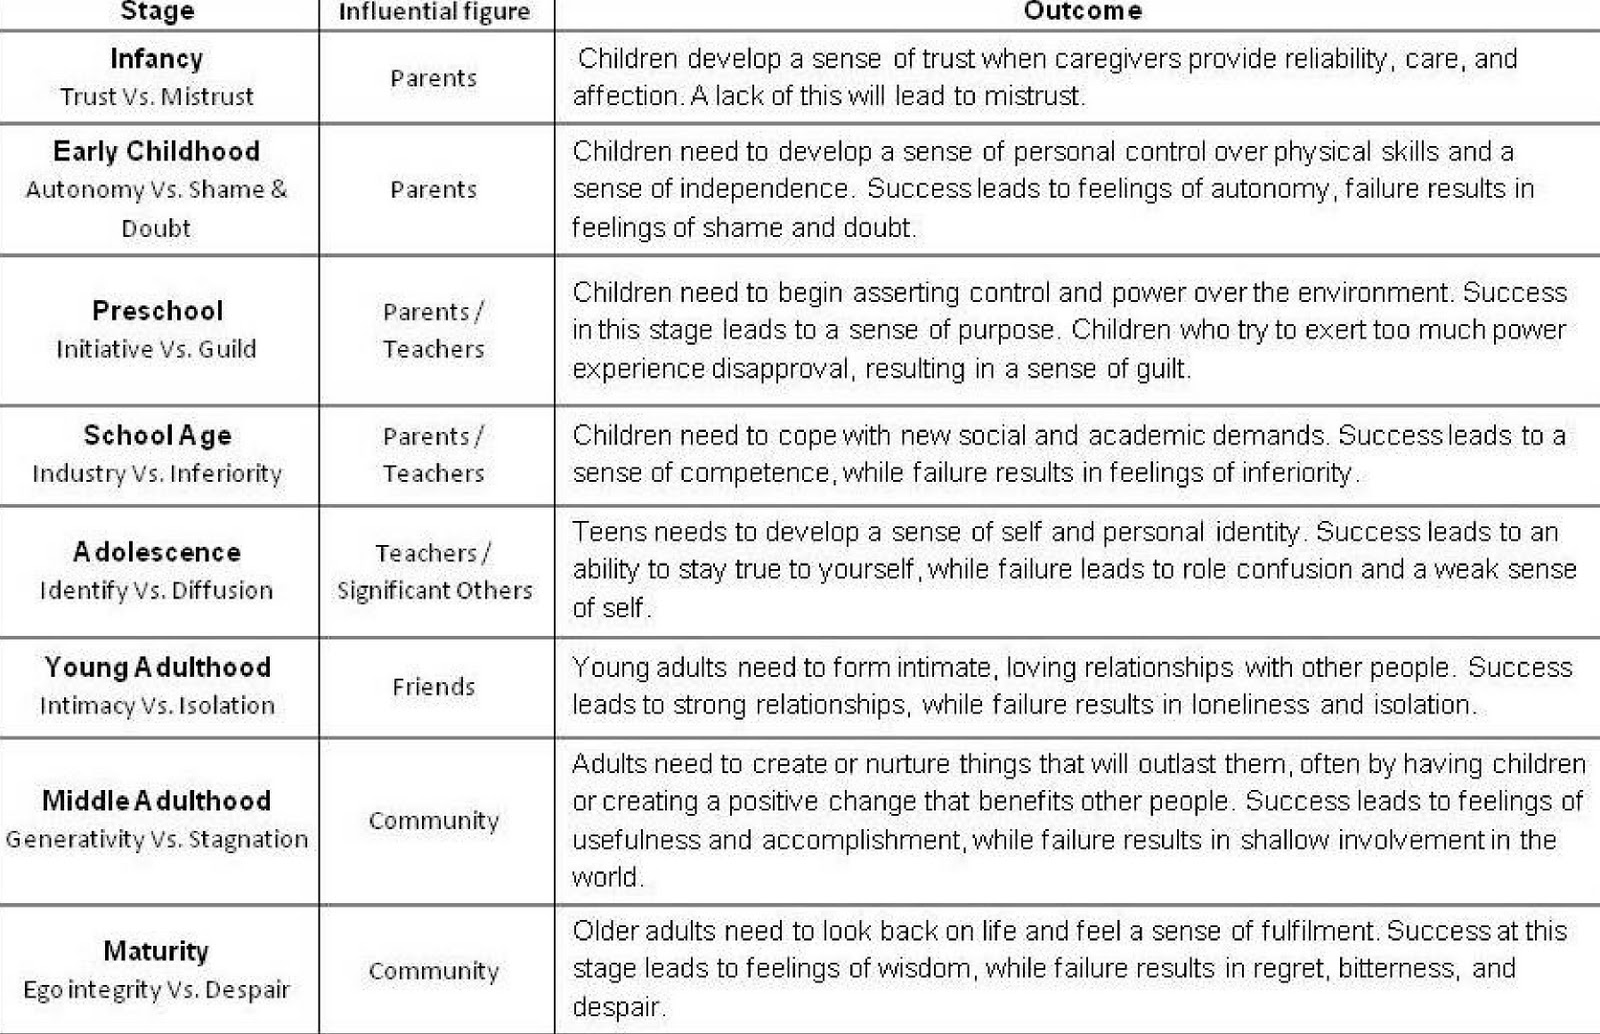 eriksons stages of development essay Erikson's theory is probably one of the most recognized stages of development theories erikson believed that personality develops in a series of stages unlike freud's theory of psychosexual stages, erikson's theory describes the impact of social experience across the whole lifespan.